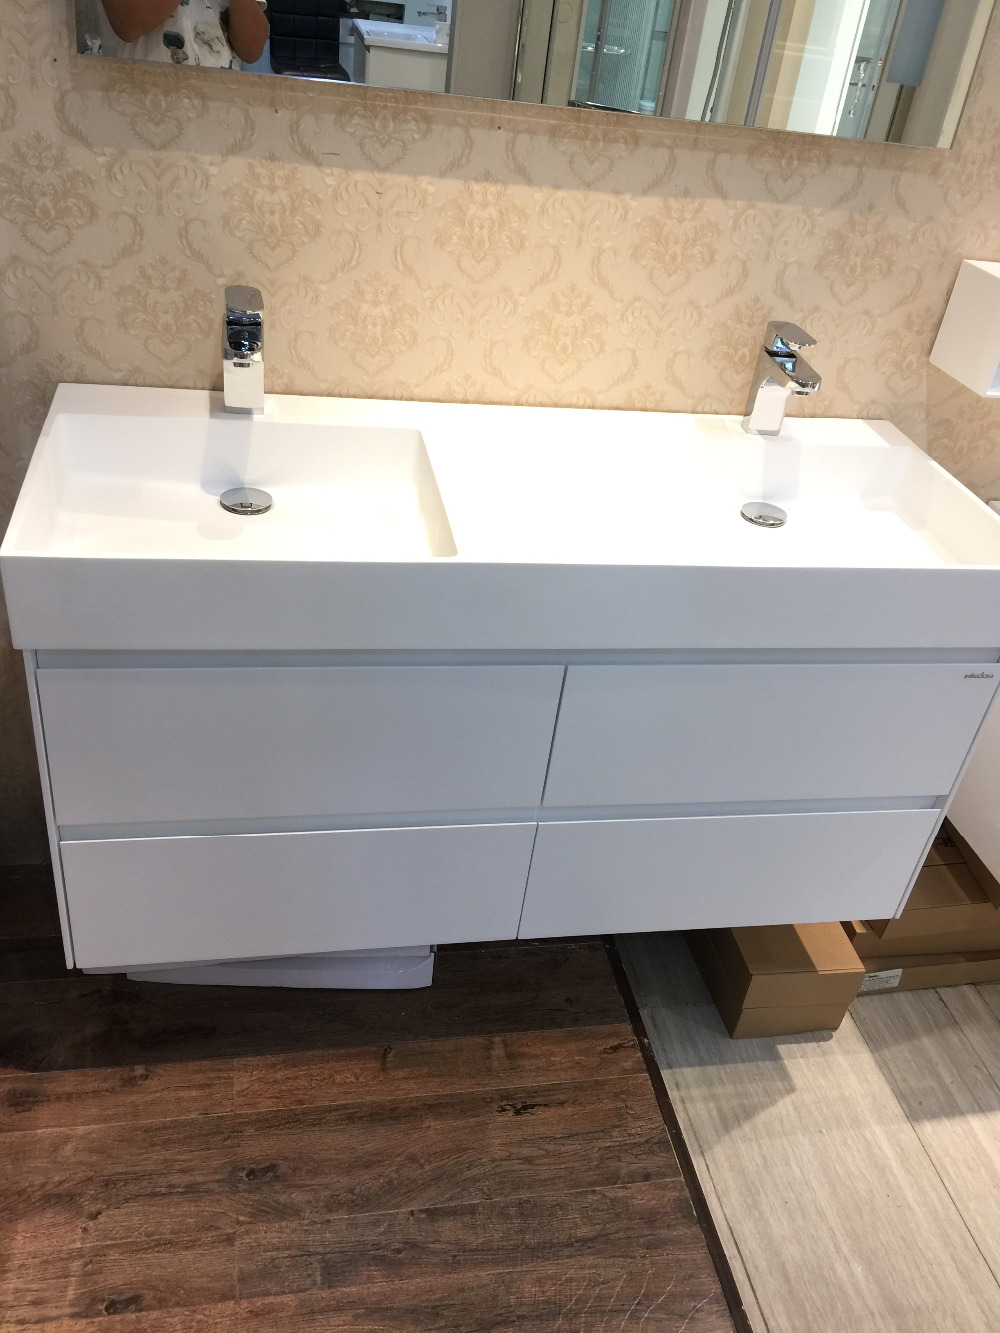 Compare Prices on Stone Sinks Bathroom Vanities- Online Shopping ...